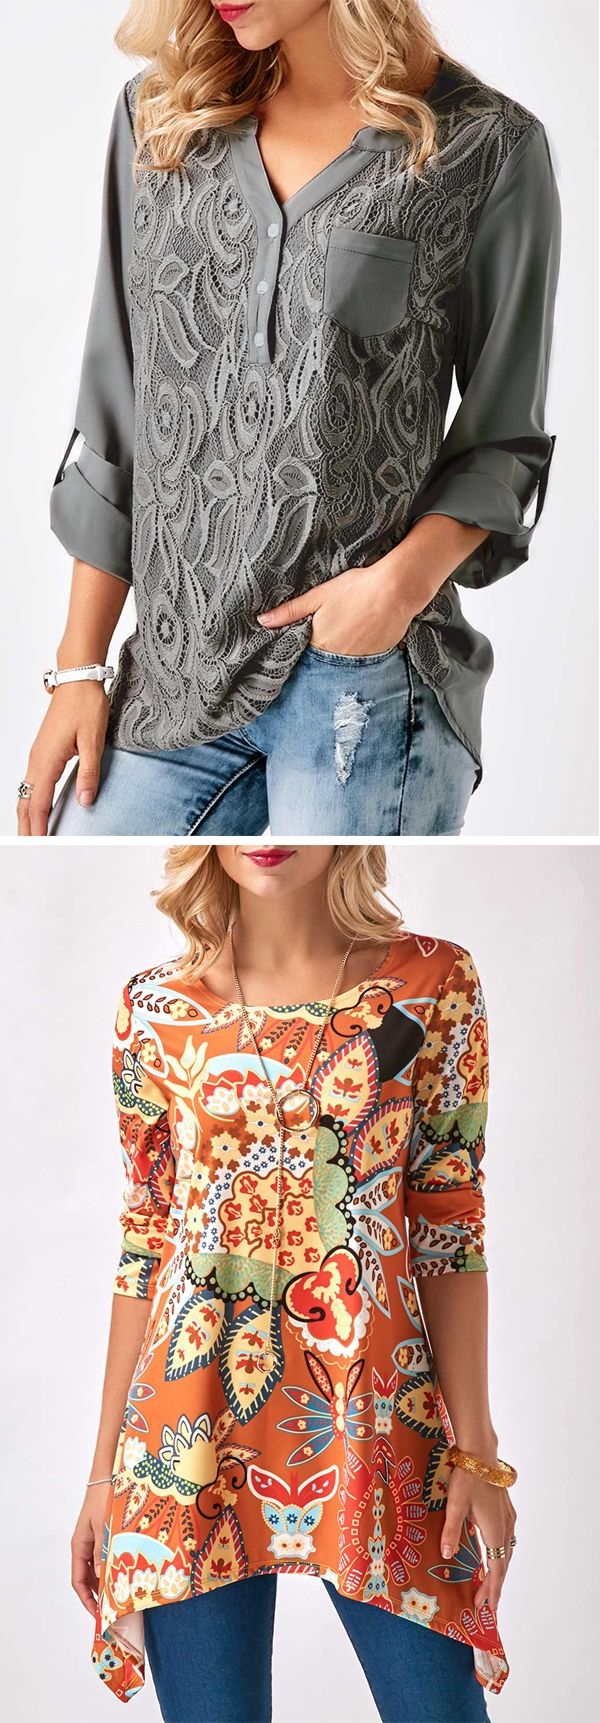 casual tops for women, cute tops for women, fashion tops for women